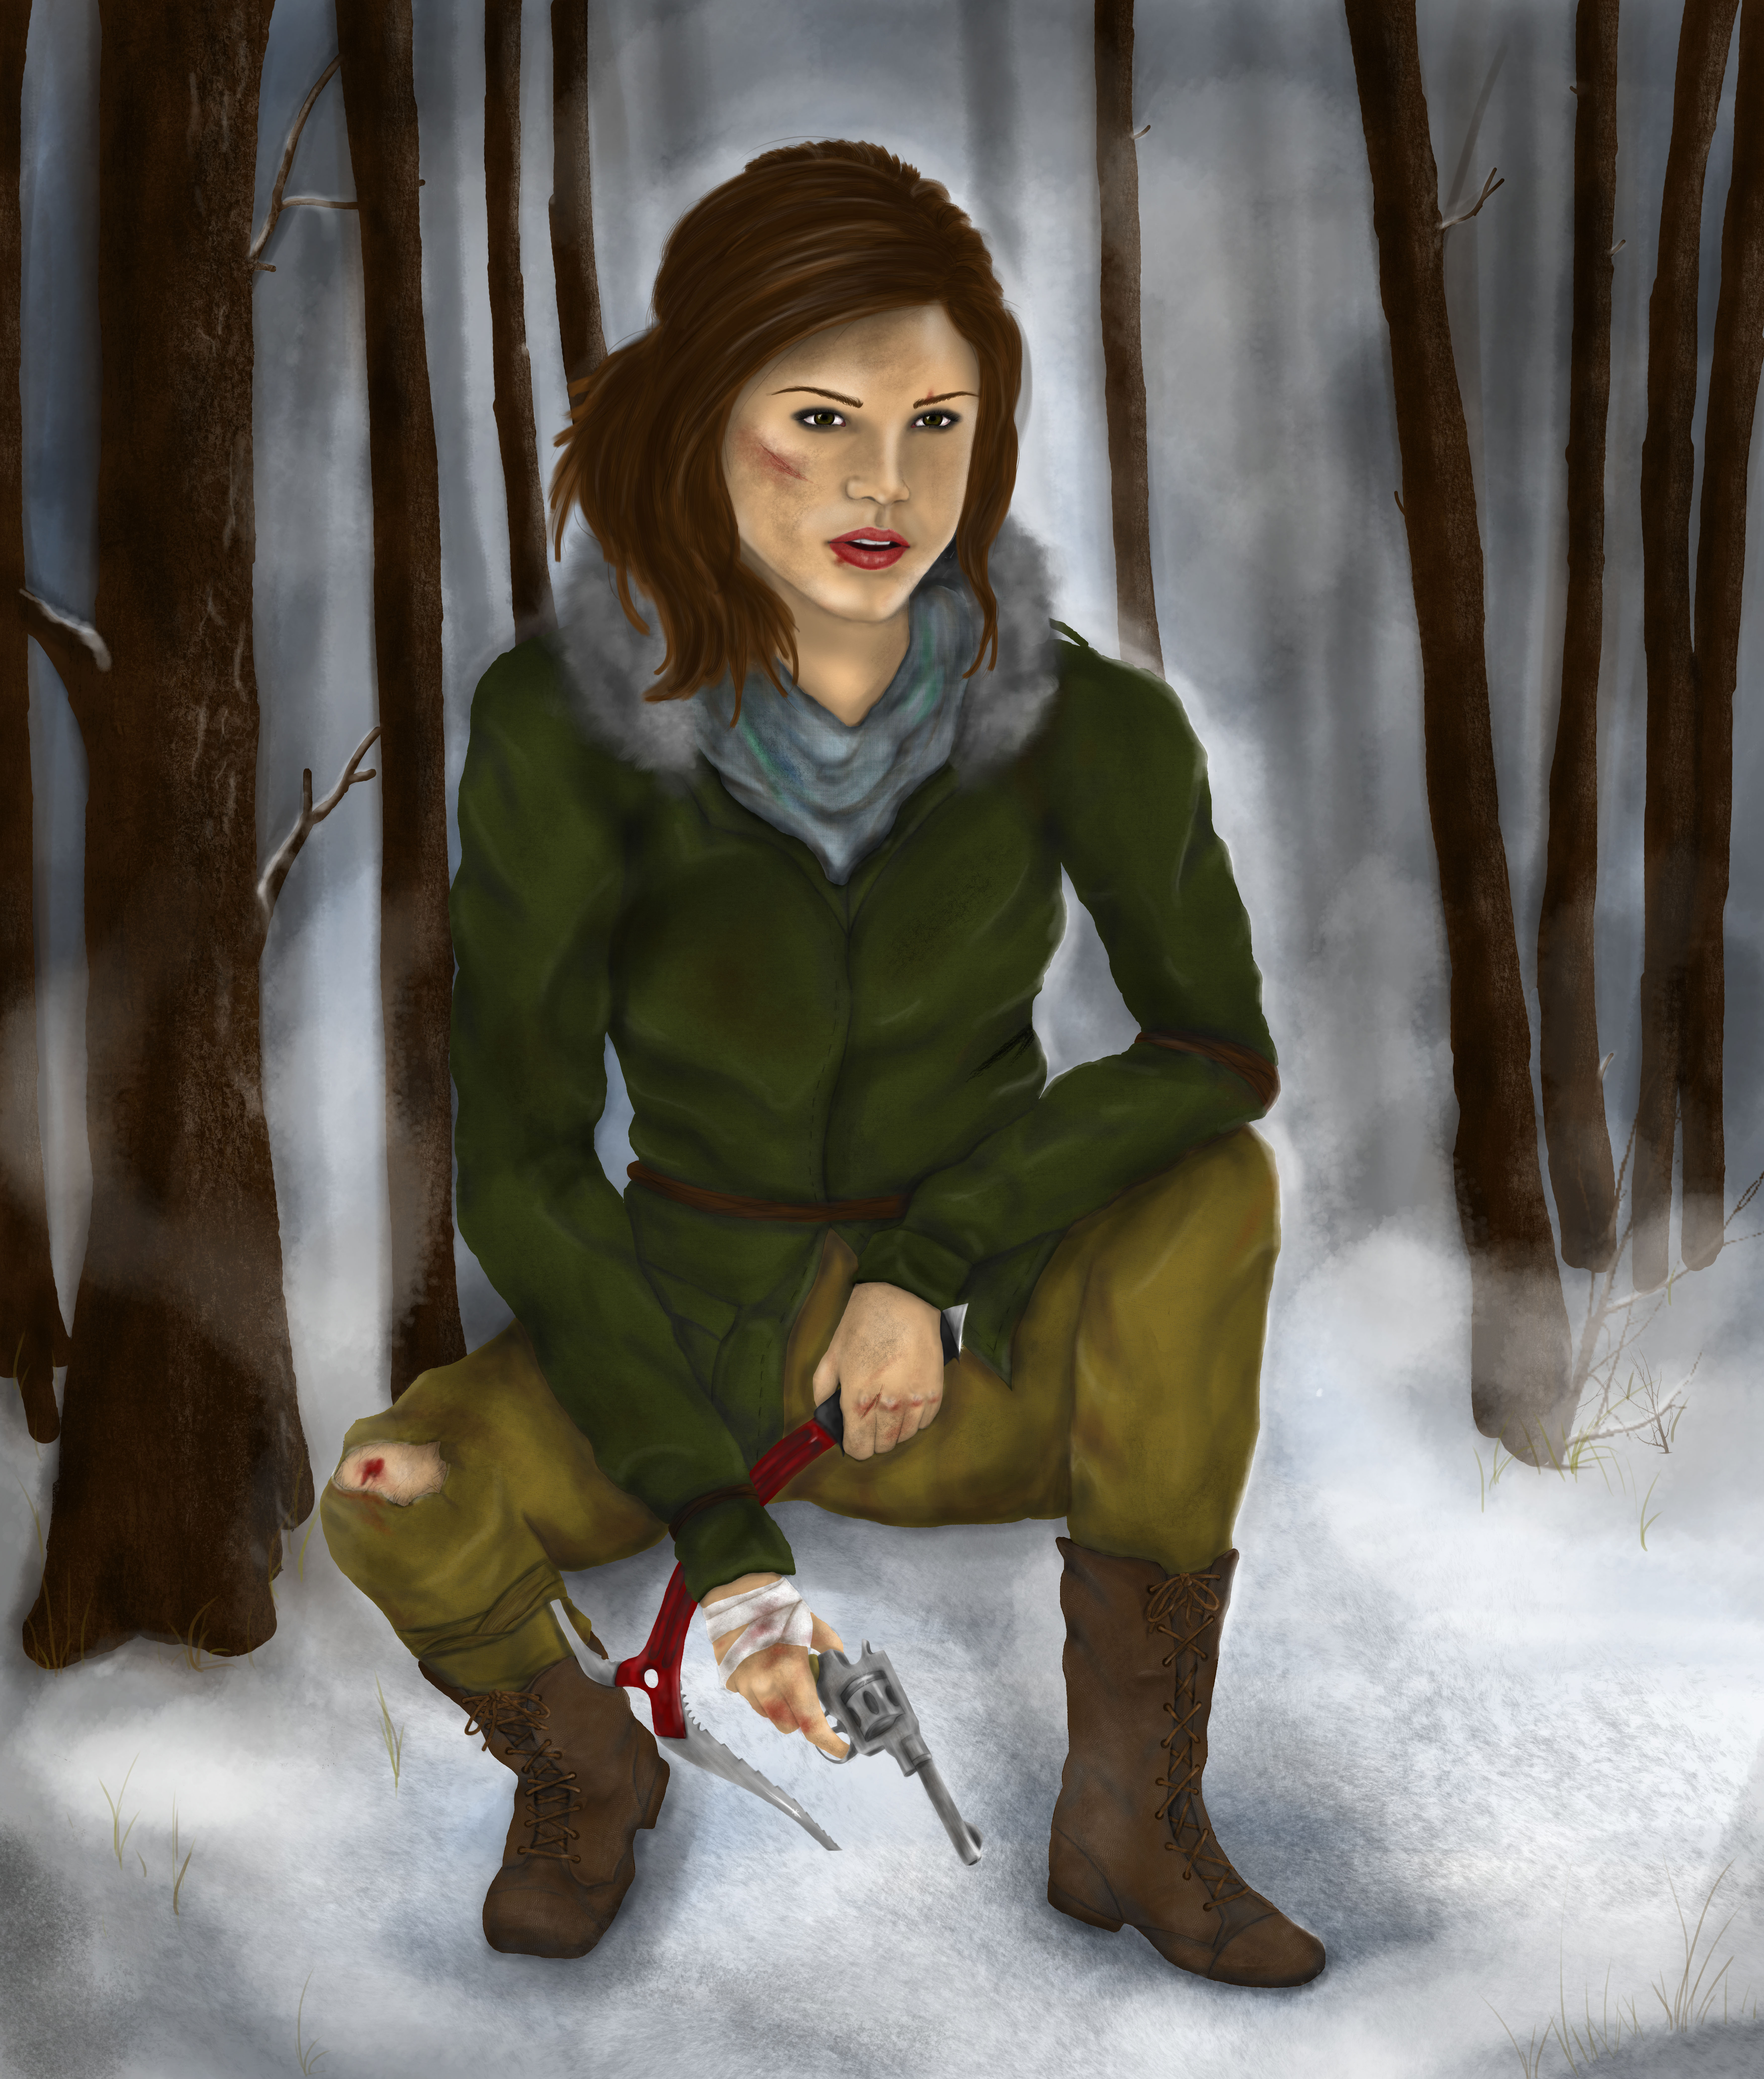 Tomb Rider Wallpaper: Rise Of The Tomb Raider By Amztizzle On